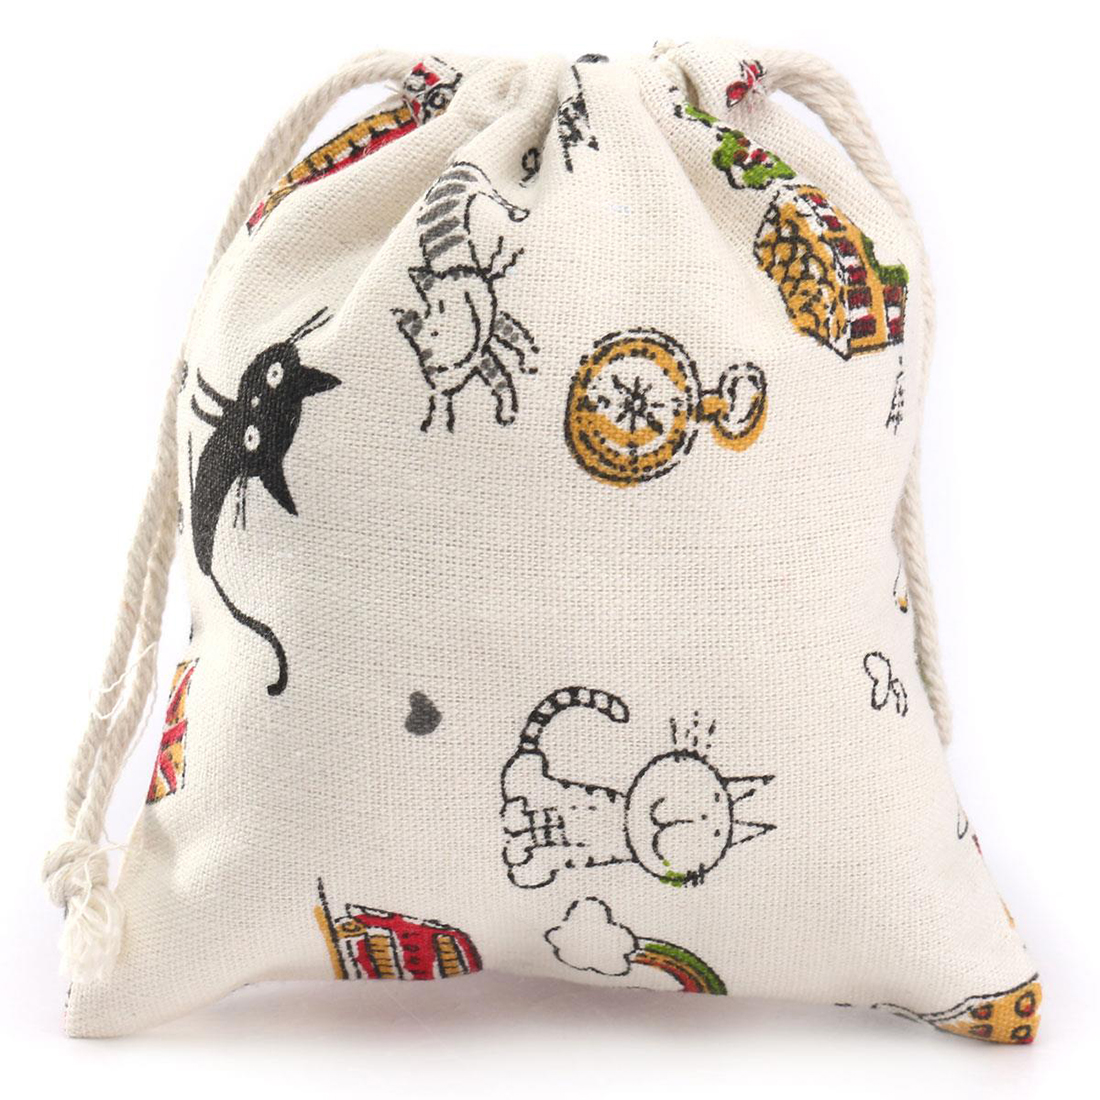 Storage Cotton Linen Cartoon Cat- Style Bags Drawstring Sack Tea Gift Bag Small Beam Rope Pouches Home Decor Handbags 14*16cm